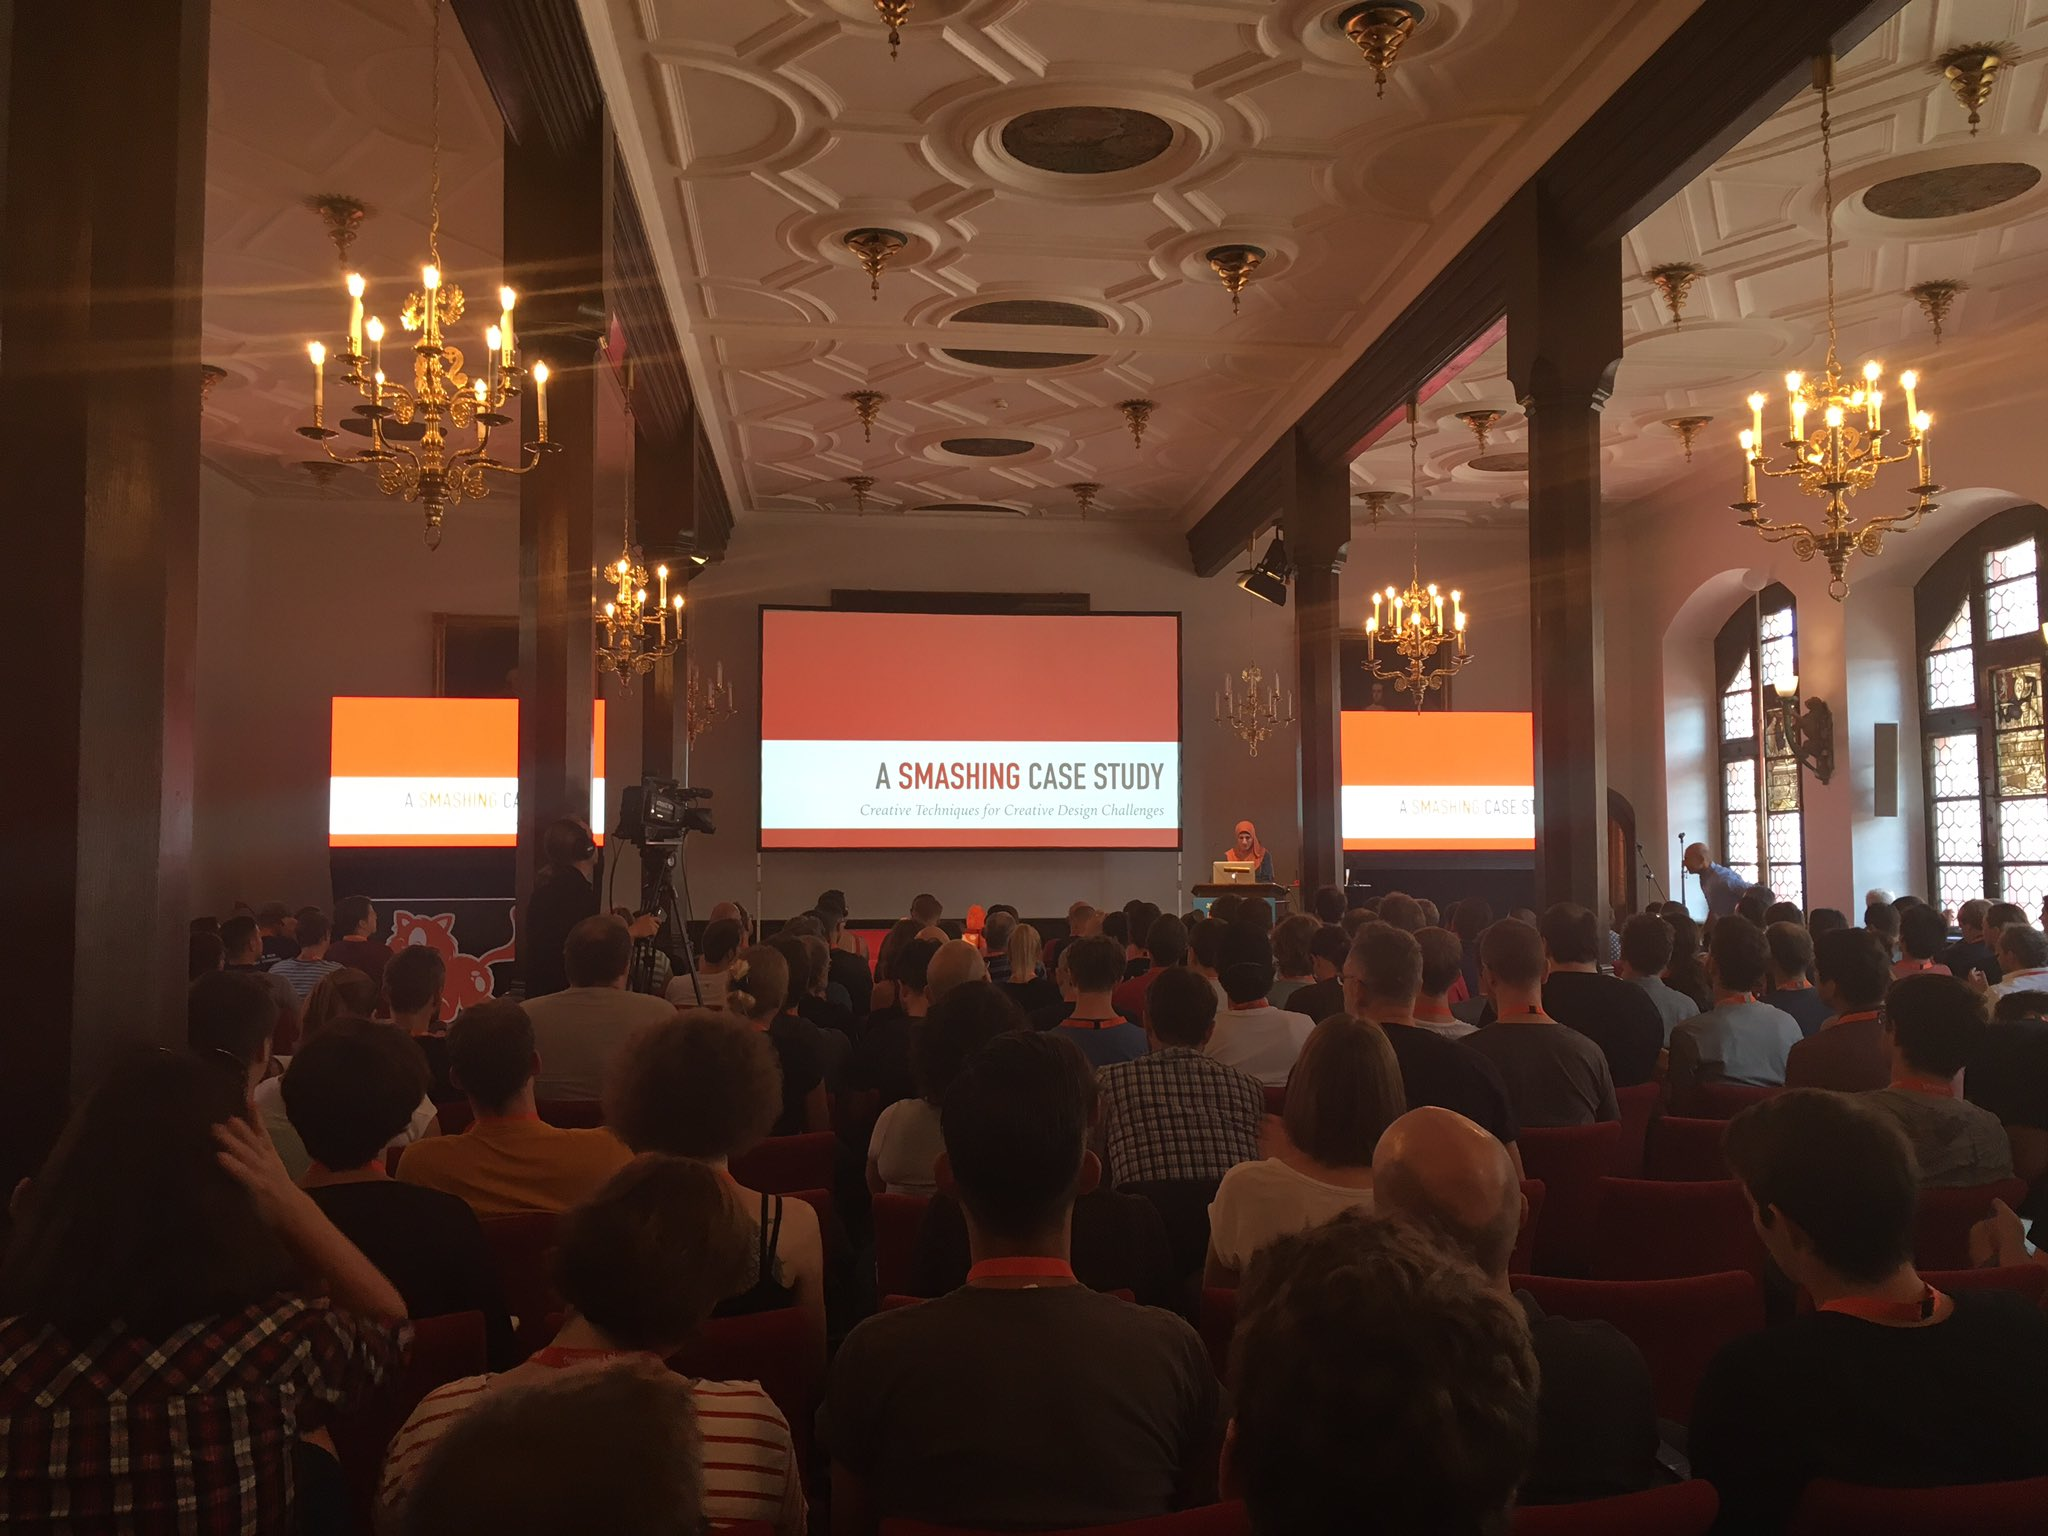 Very glad to finally see a talk from @SaraSoueidan - about @smashingmag redesign #smashingconf https://t.co/Oi2mpxTuN1